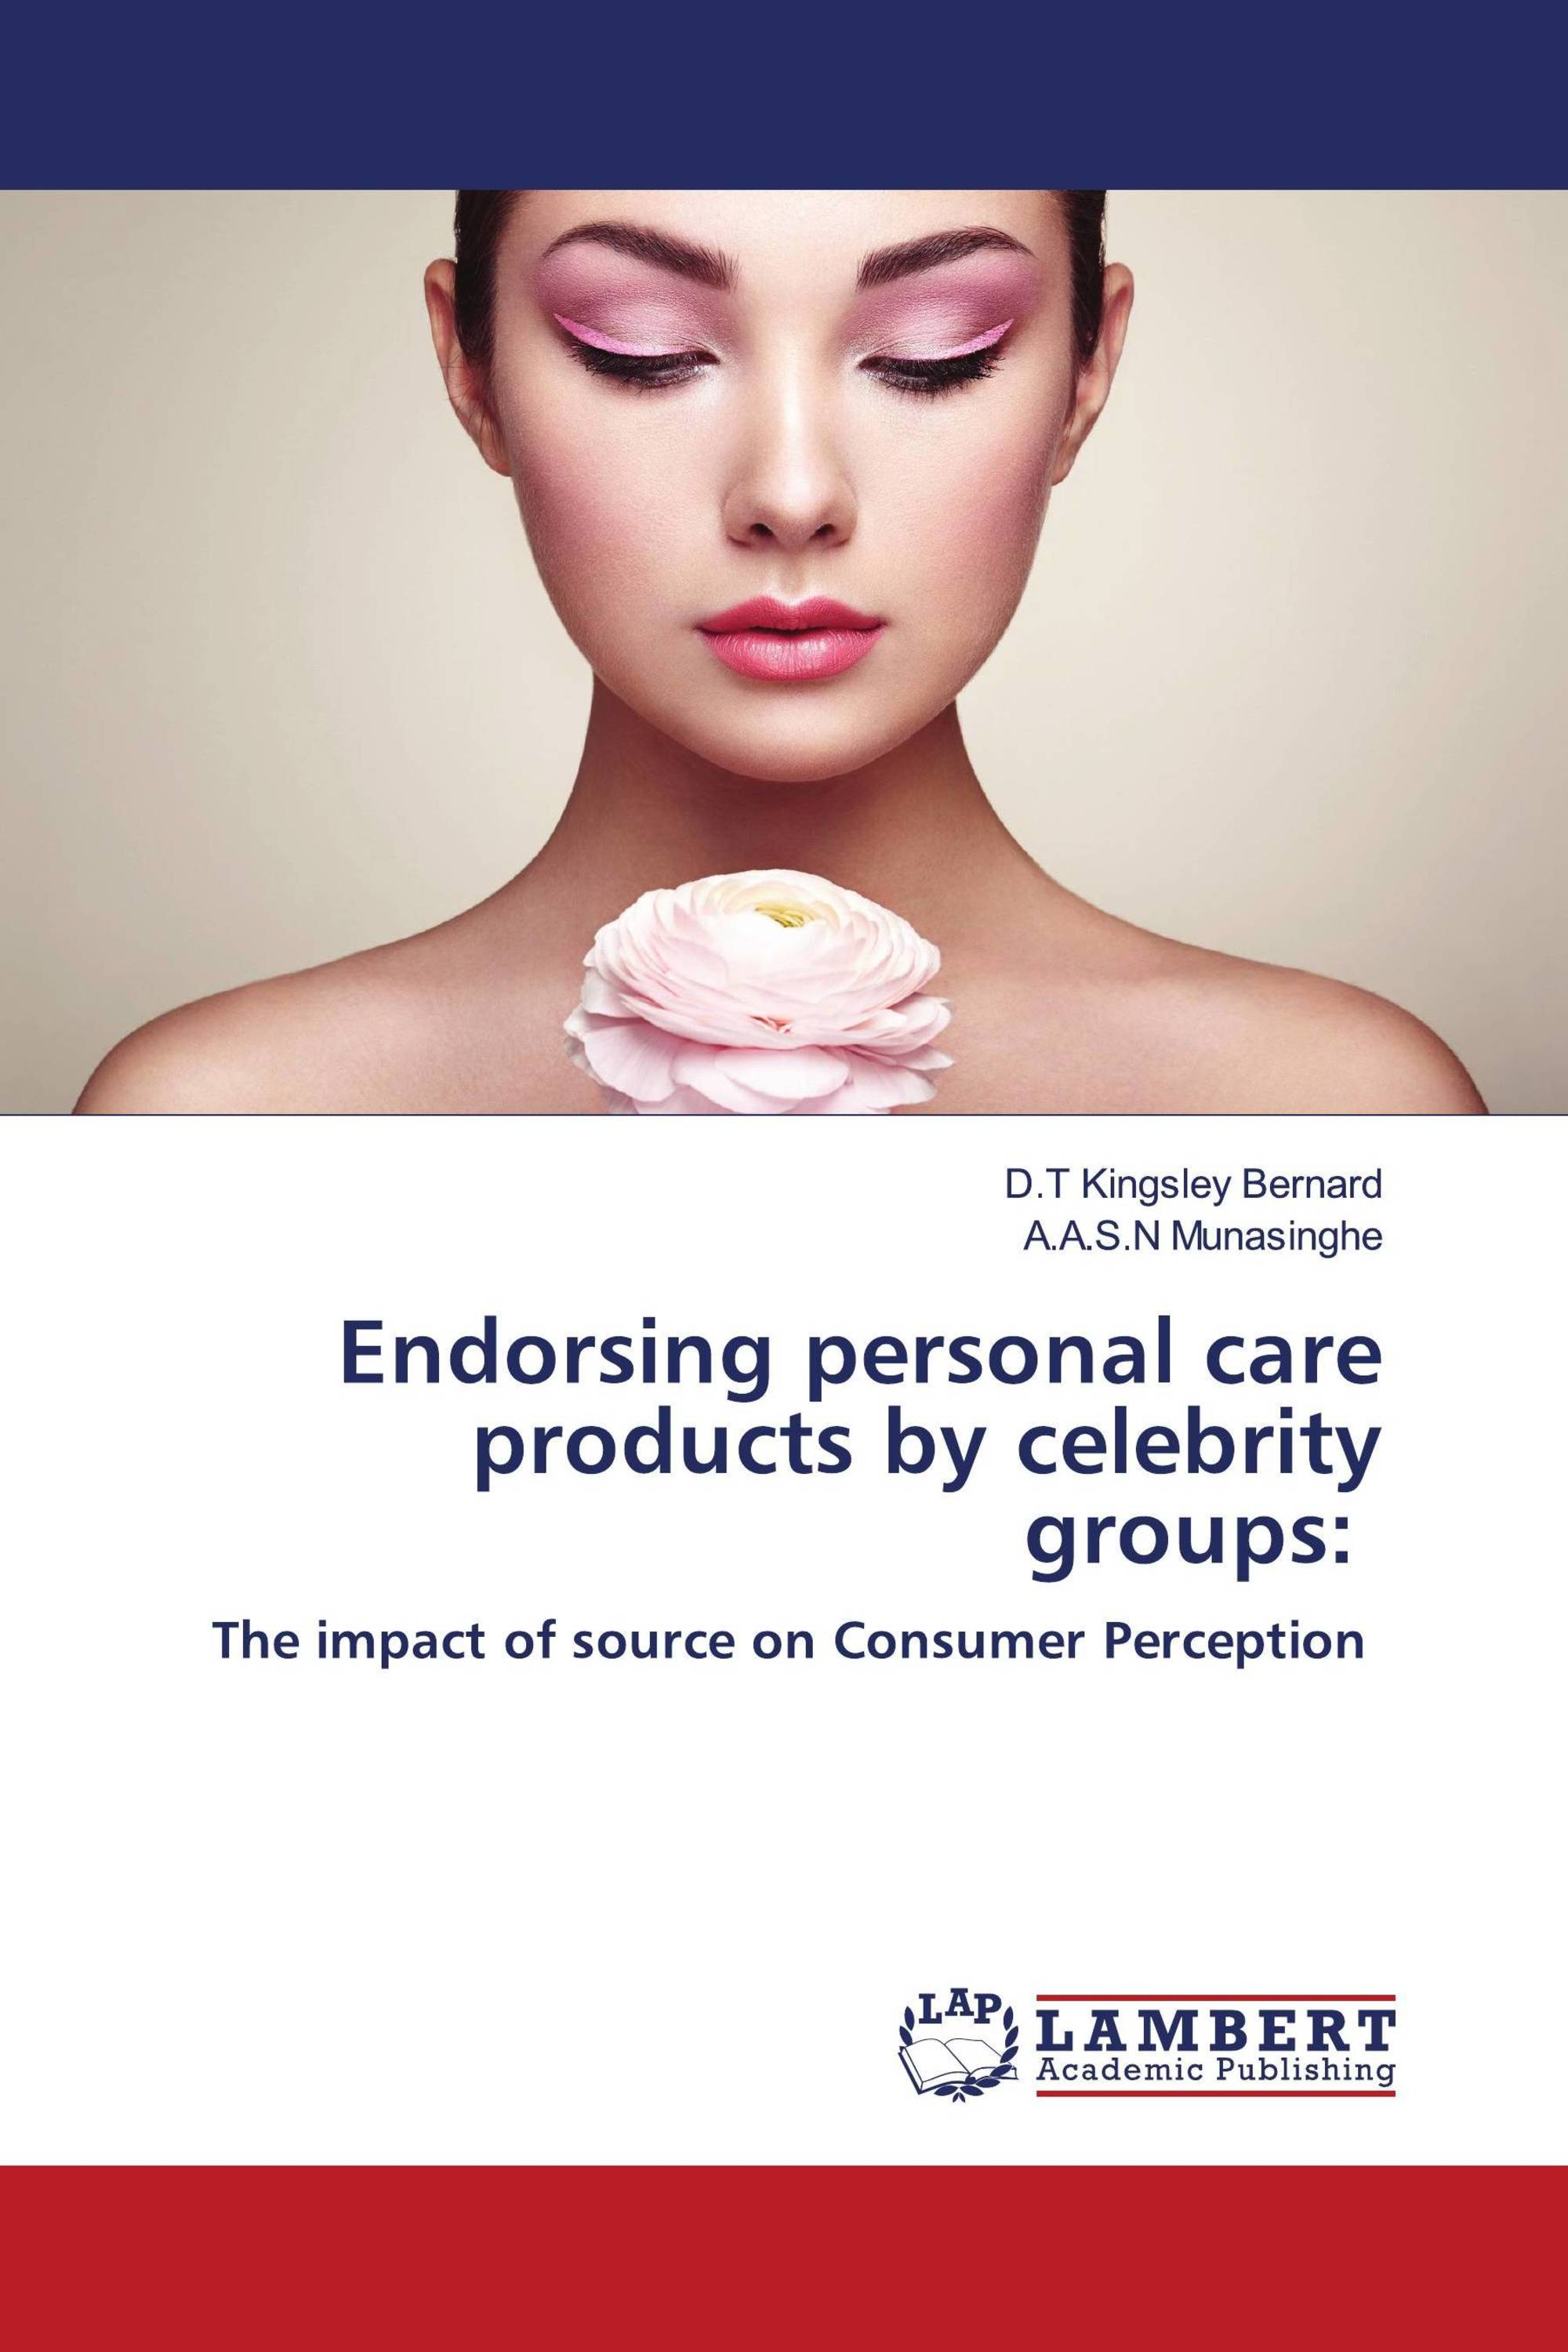 Endorsing personal care products by celebrity groups: